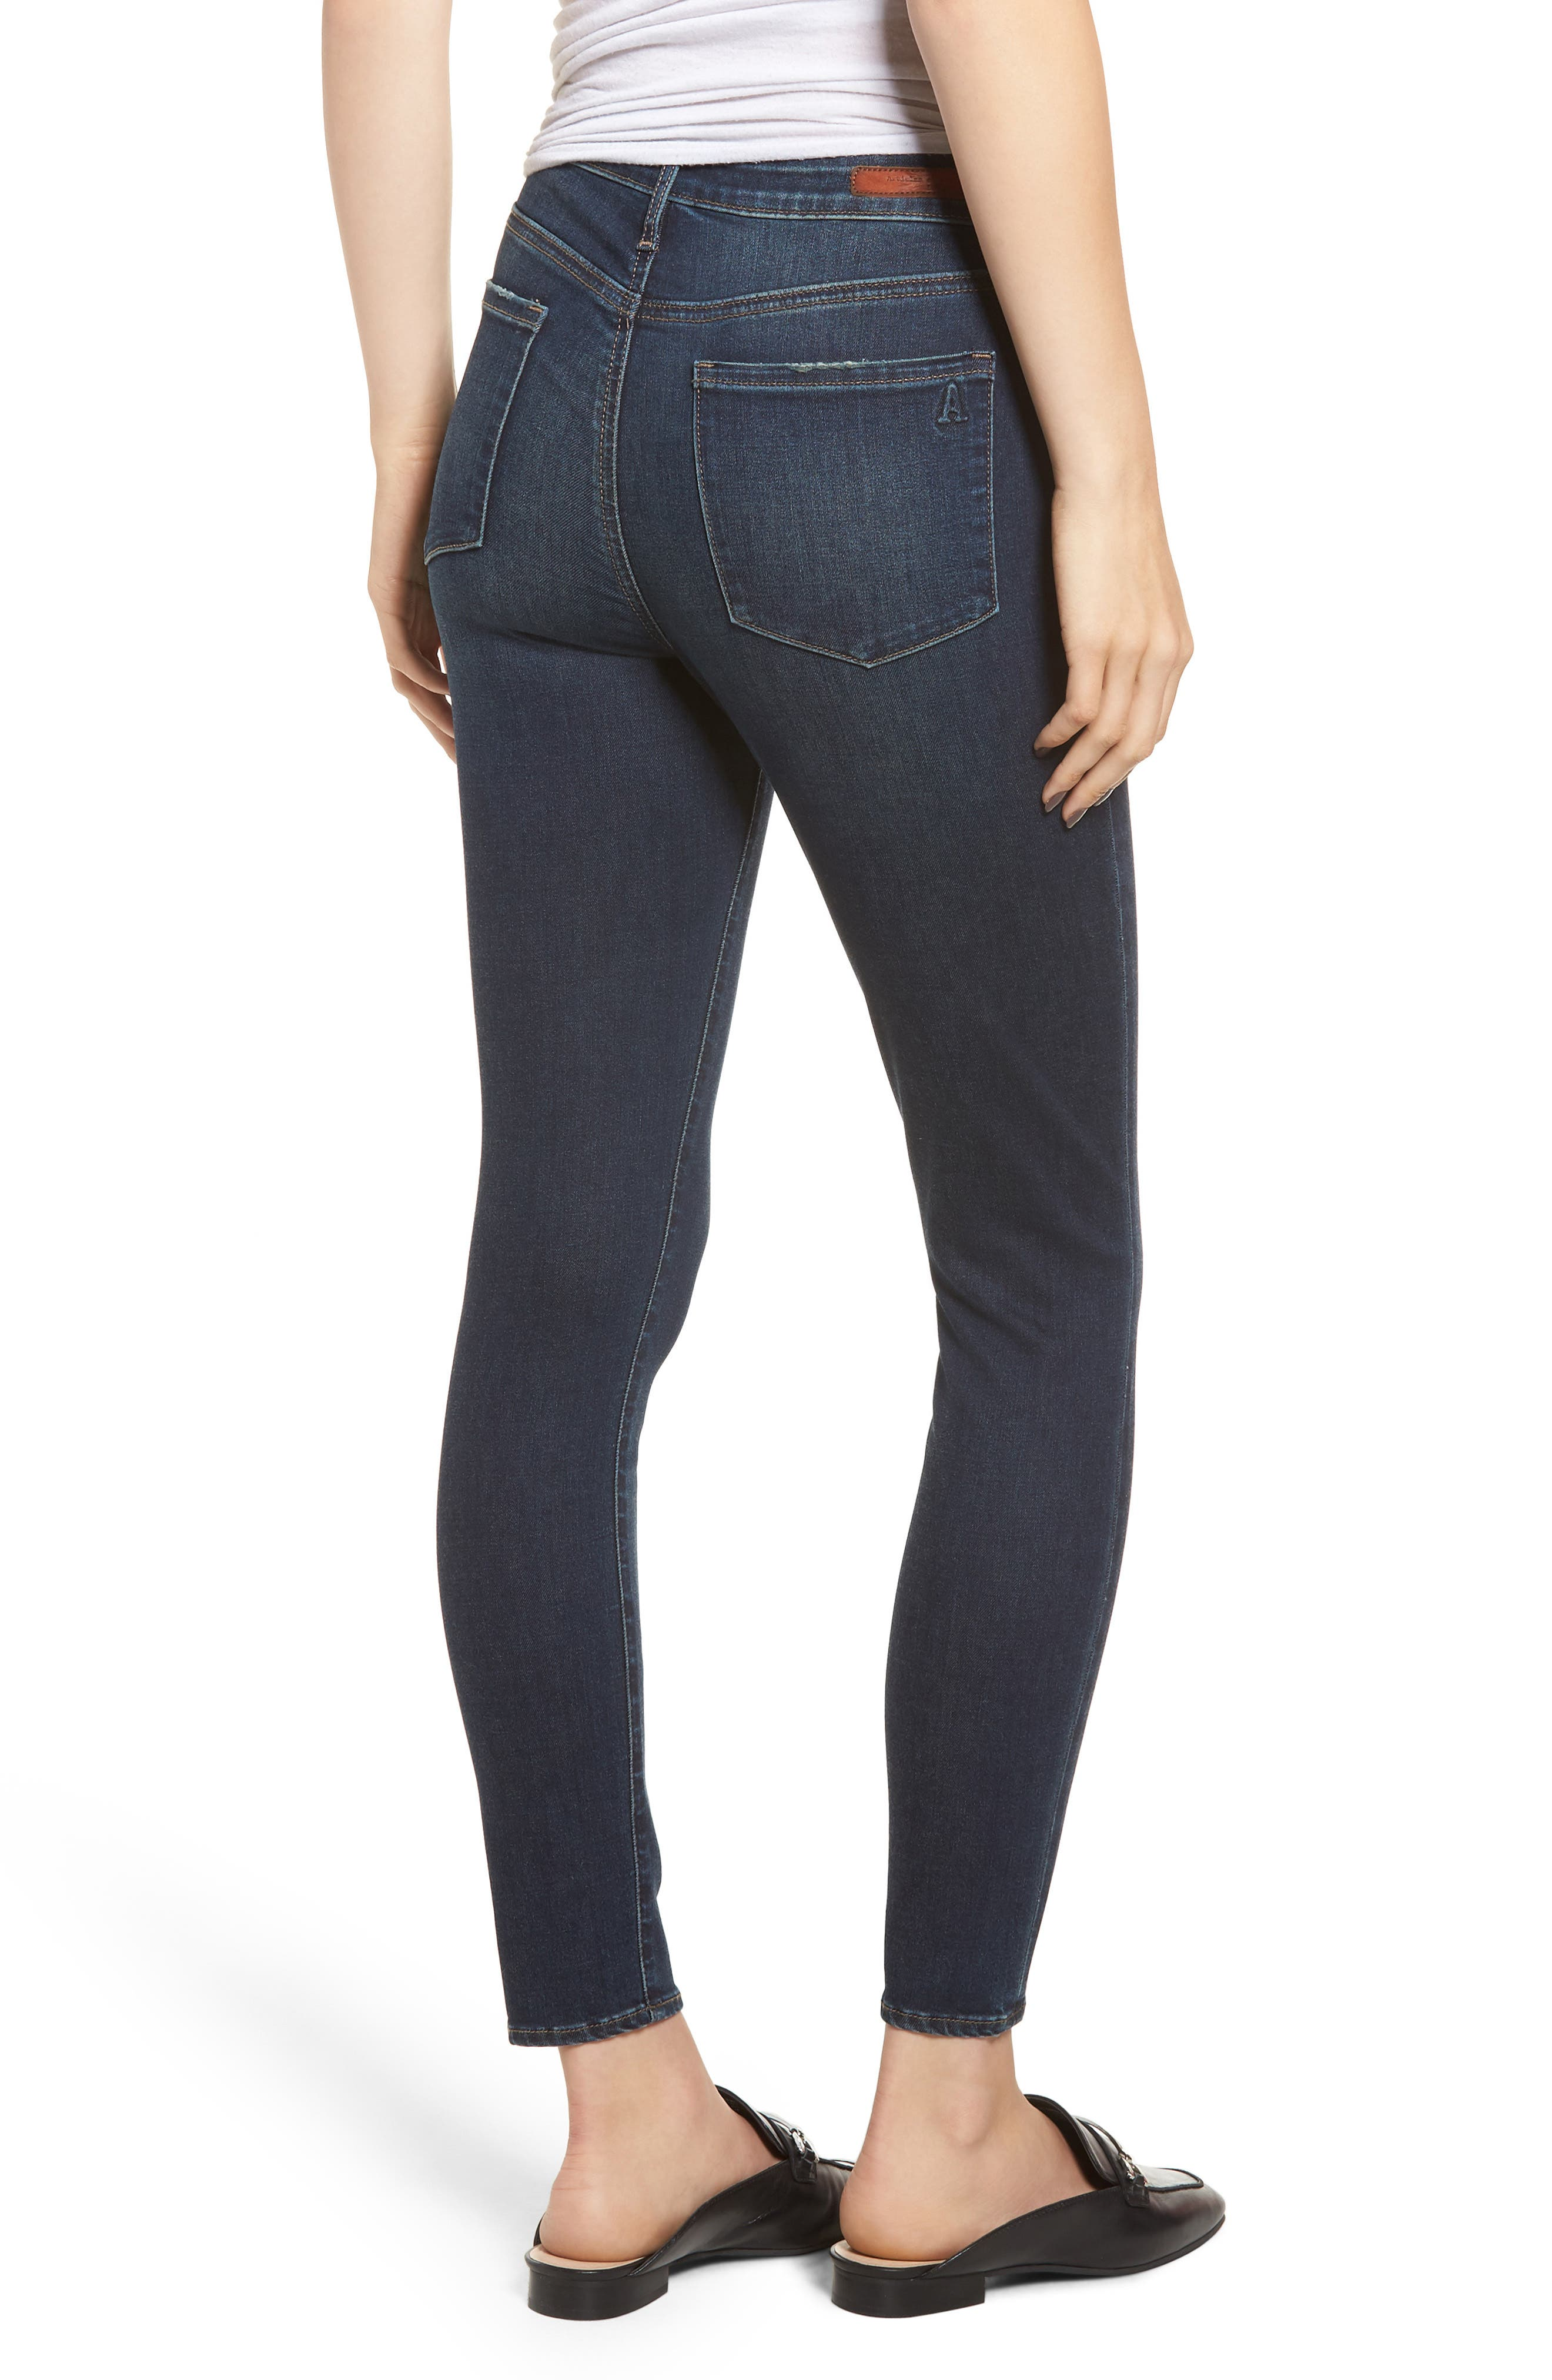 ARTICLES OF SOCIETY, Heather High Waist Ankle Skinny Jeans, Alternate thumbnail 2, color, 461